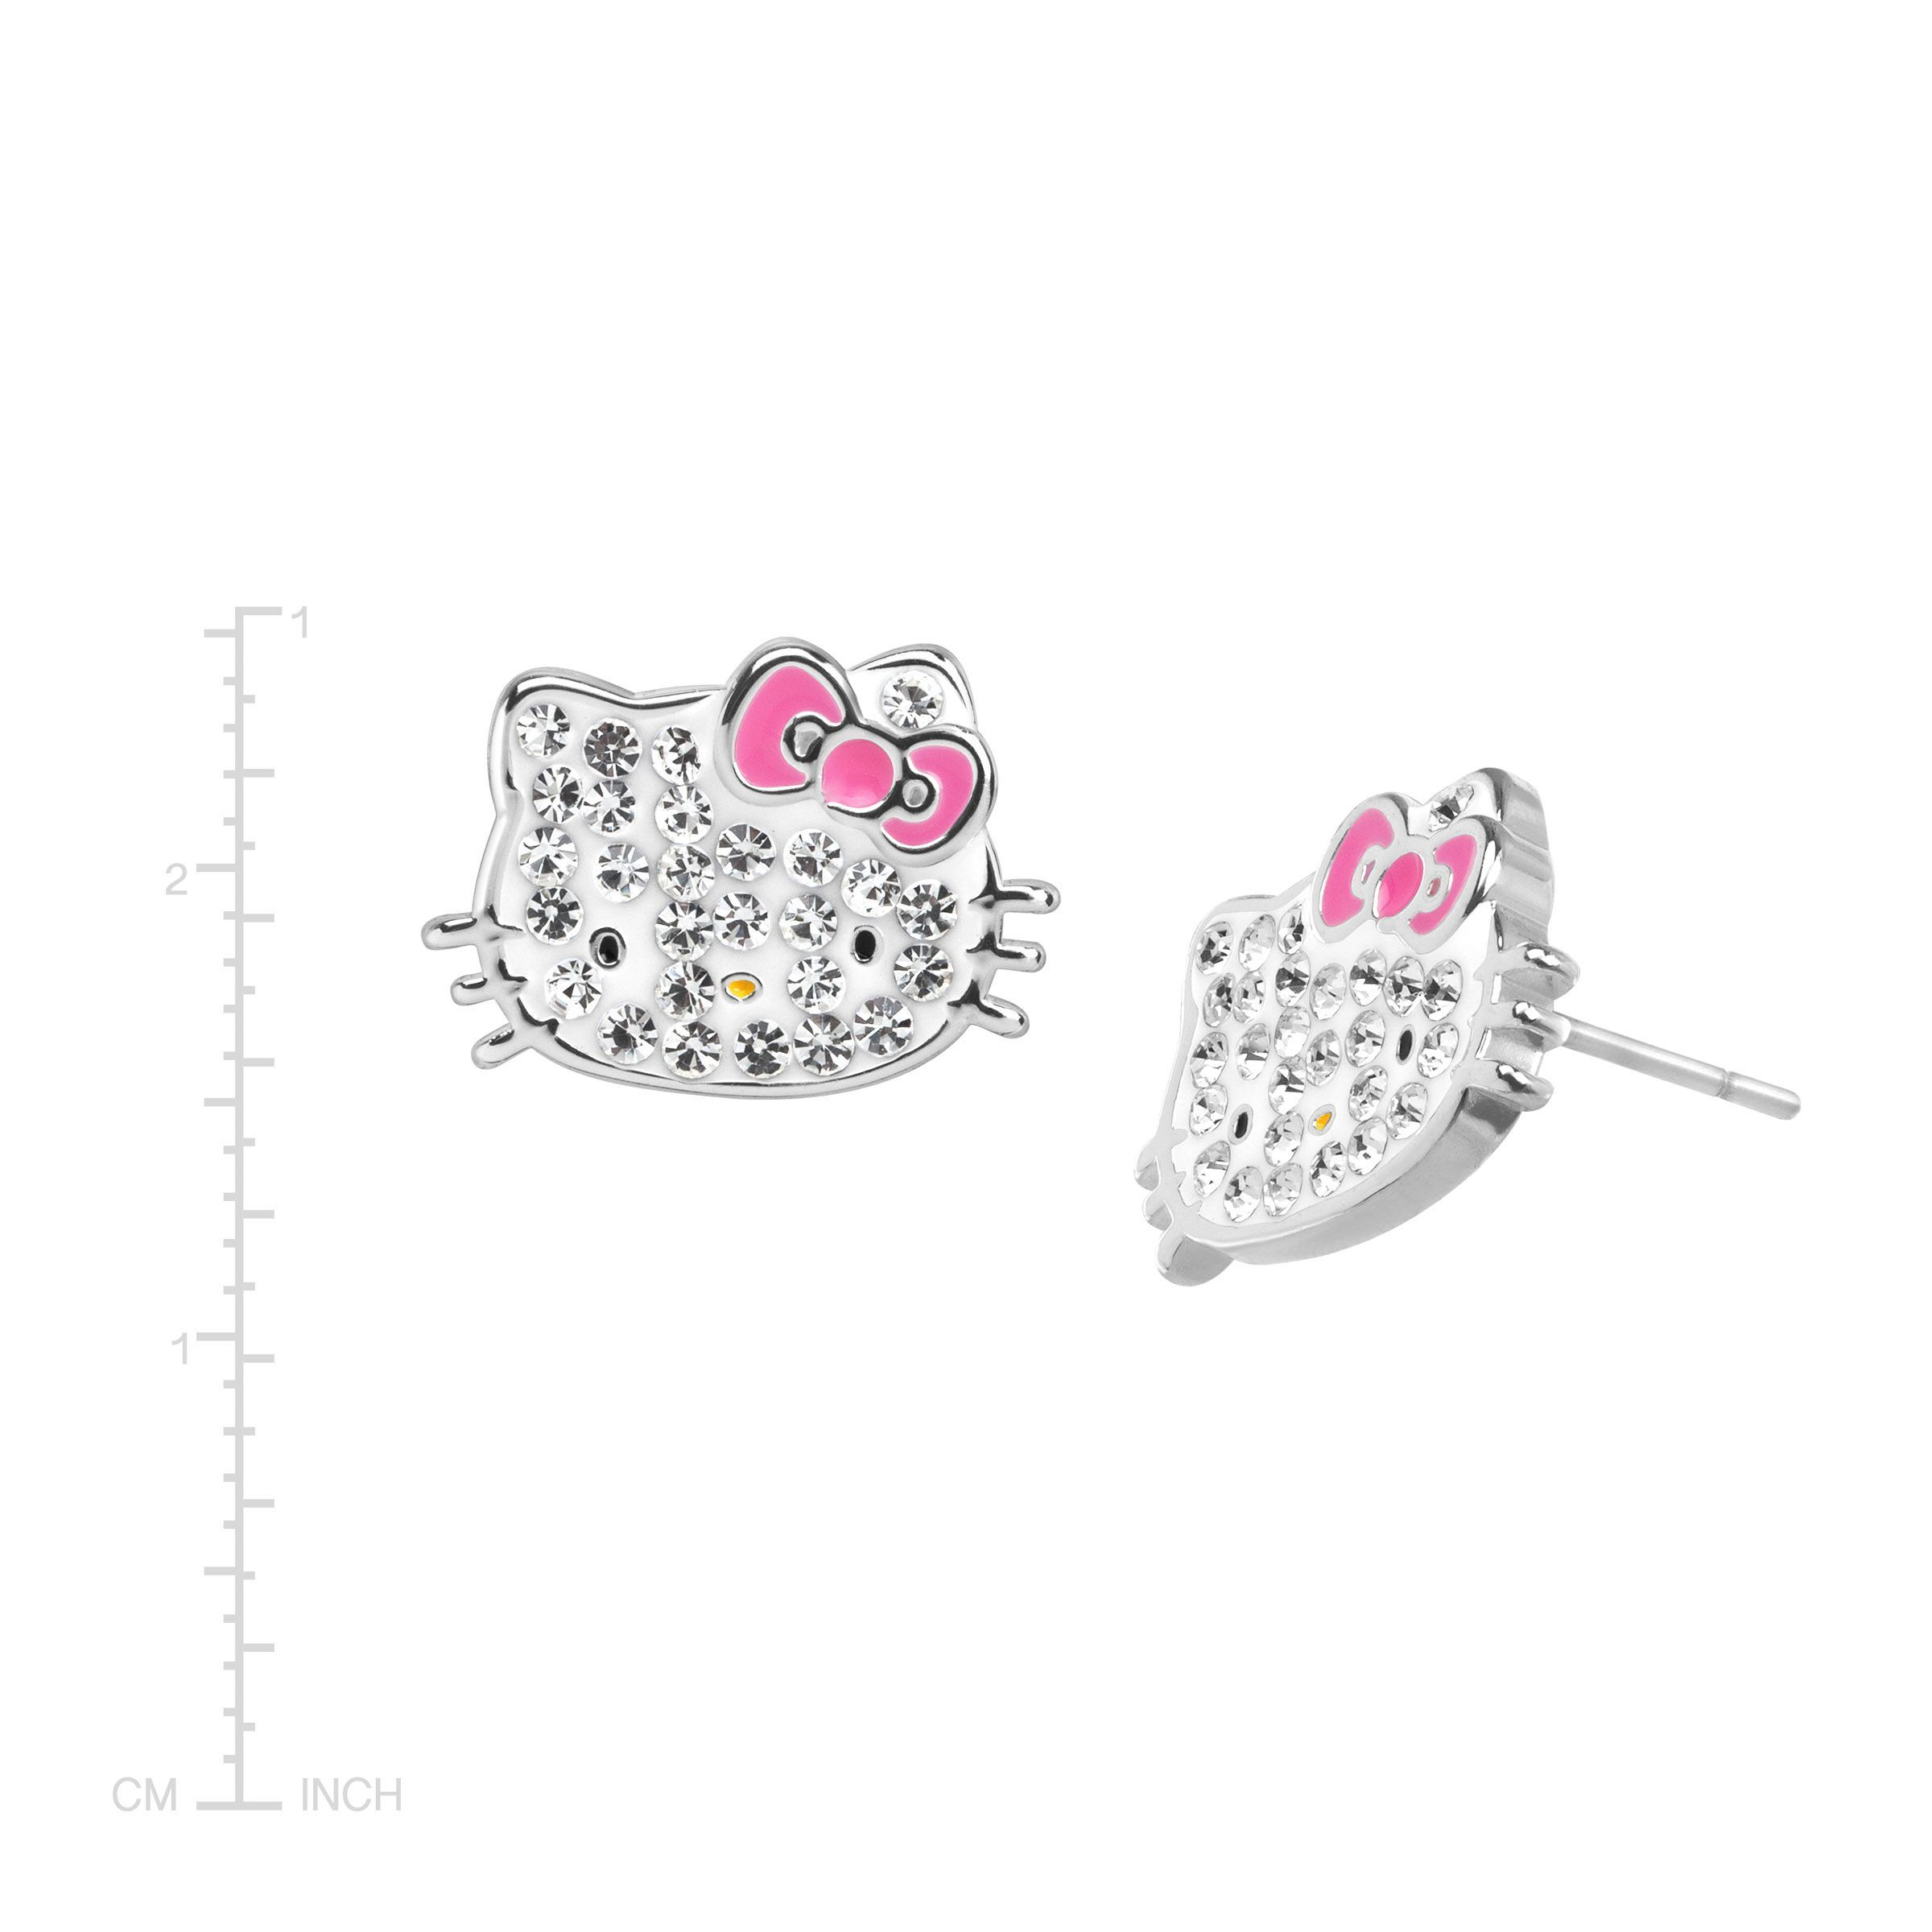 5d98d0d88 Hello Kitty Stud Earrings with Crystals in Sterling Silver-Plated Brass